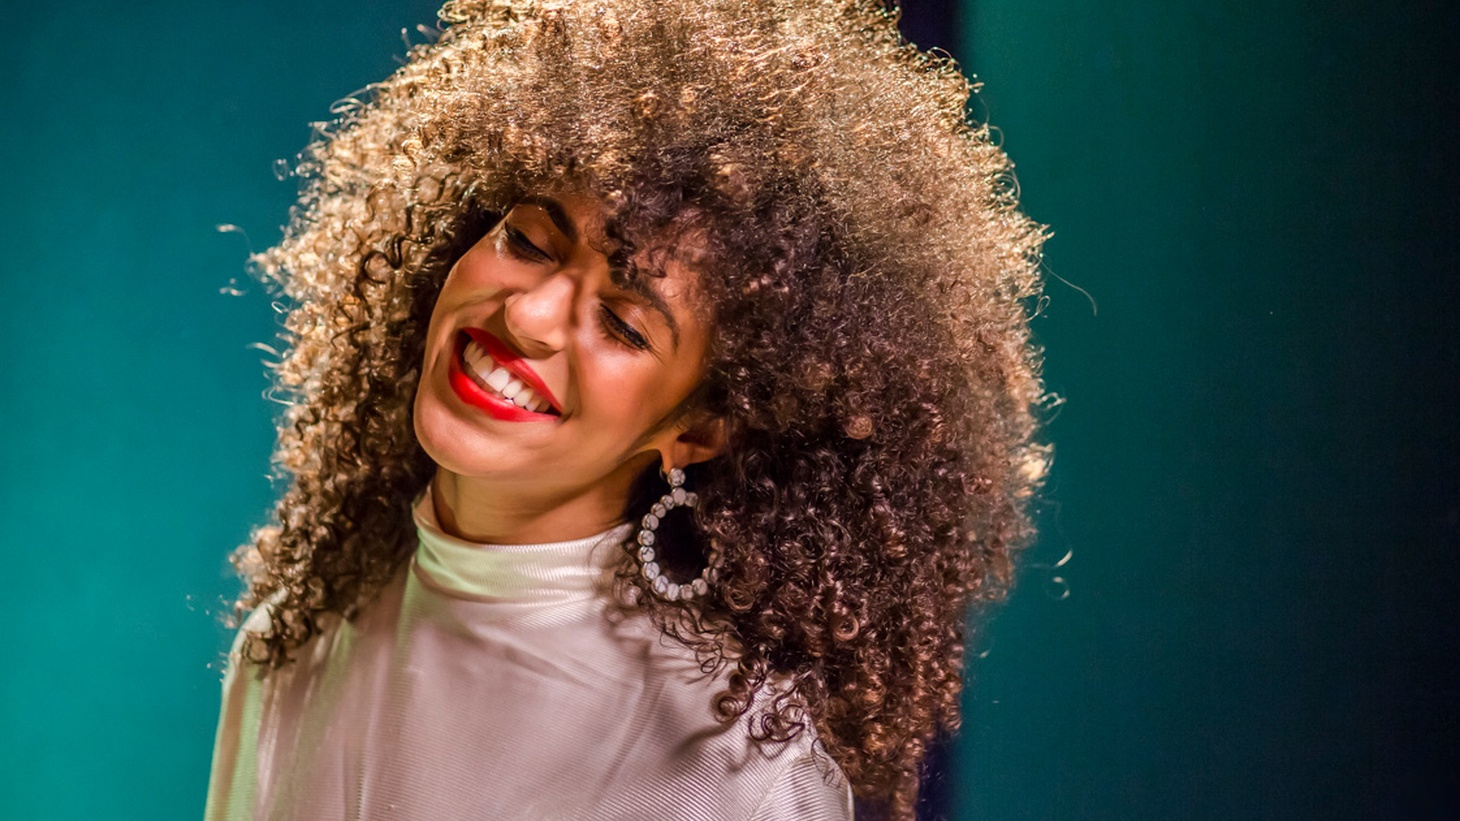 Gavin Turek delivers dancefloor-ready disco soul and has been compared to Beyonce for her incredible on-stage charisma.